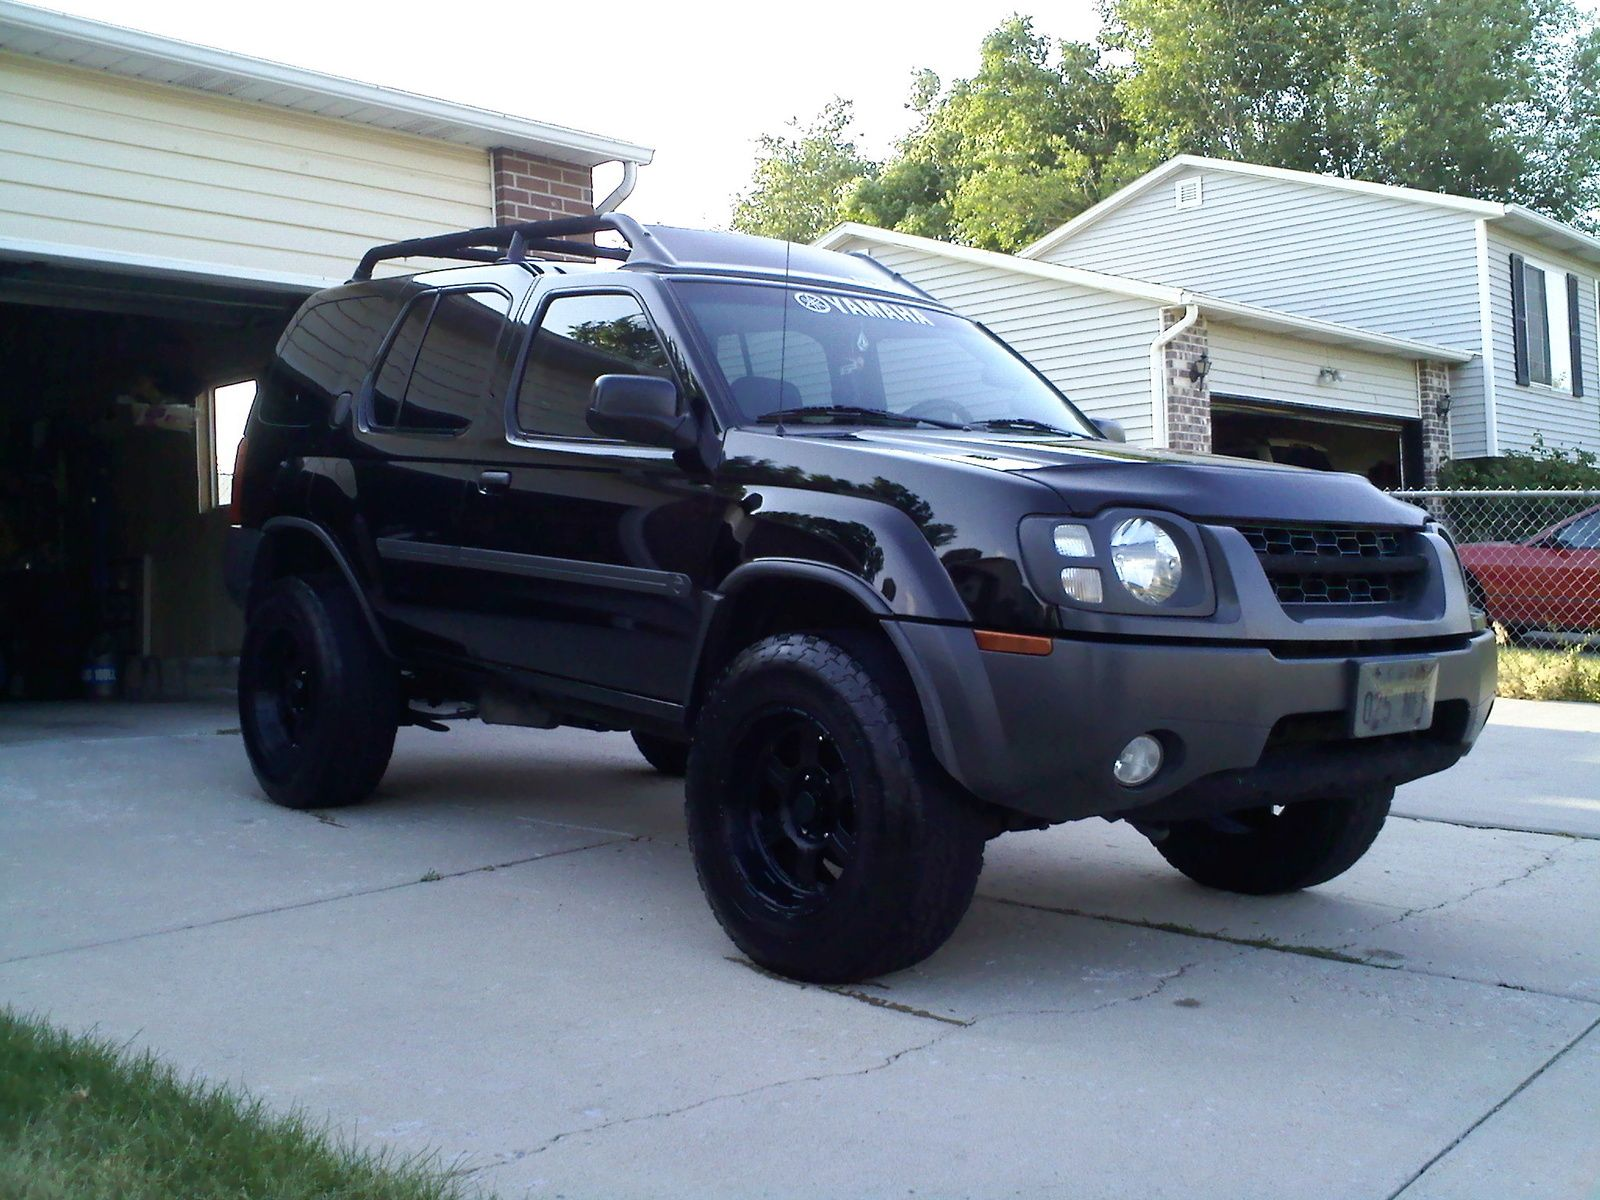 56 best nissan xterra images on pinterest offroad jeep and jeep 2002 nissan xterra xe supercharged 4wd vanachro Images